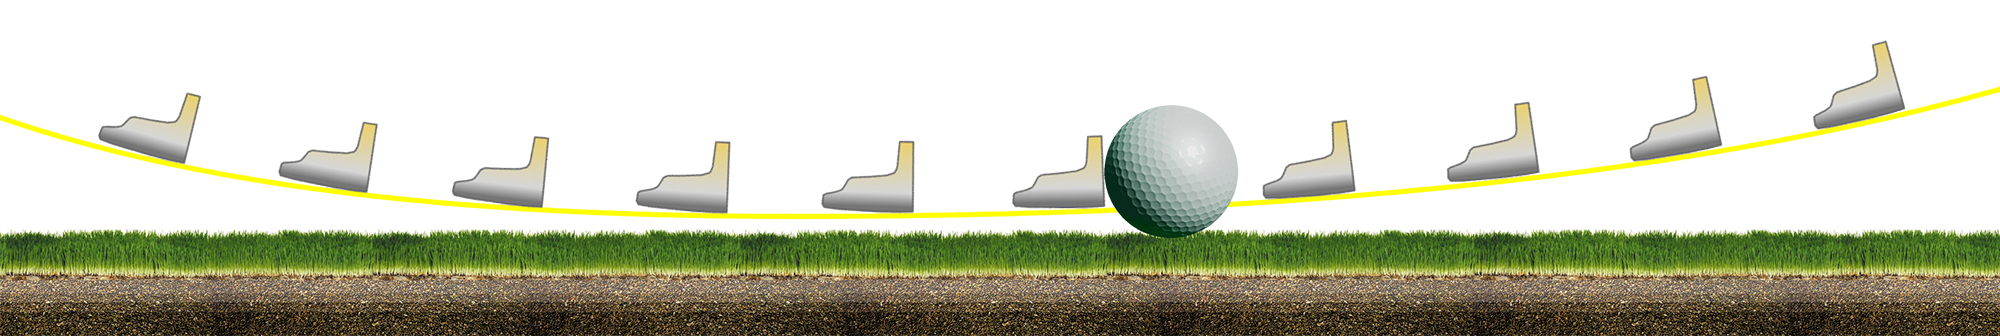 carnet de visualisation : putter sur le green